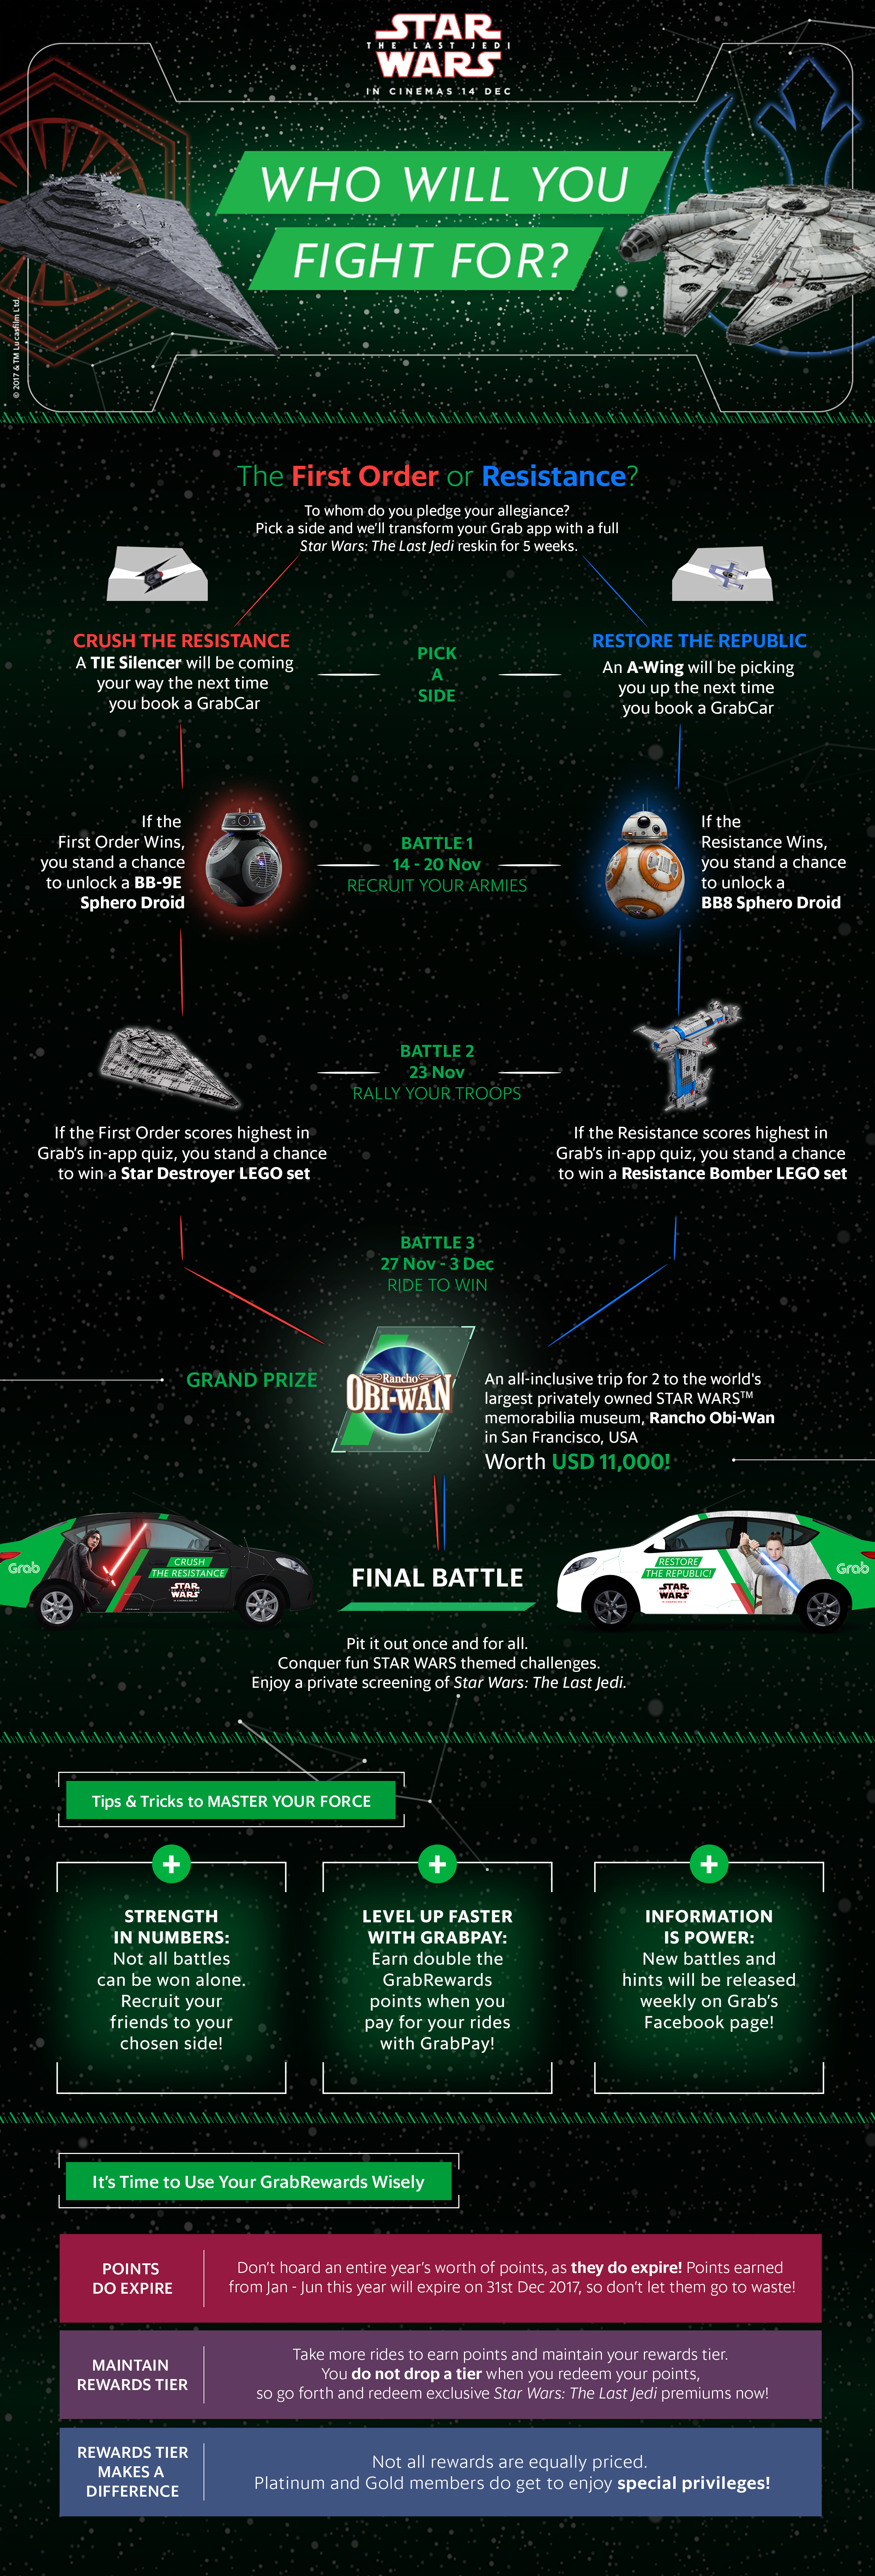 All the information you need to know for the Grab x Star Wars campaign.